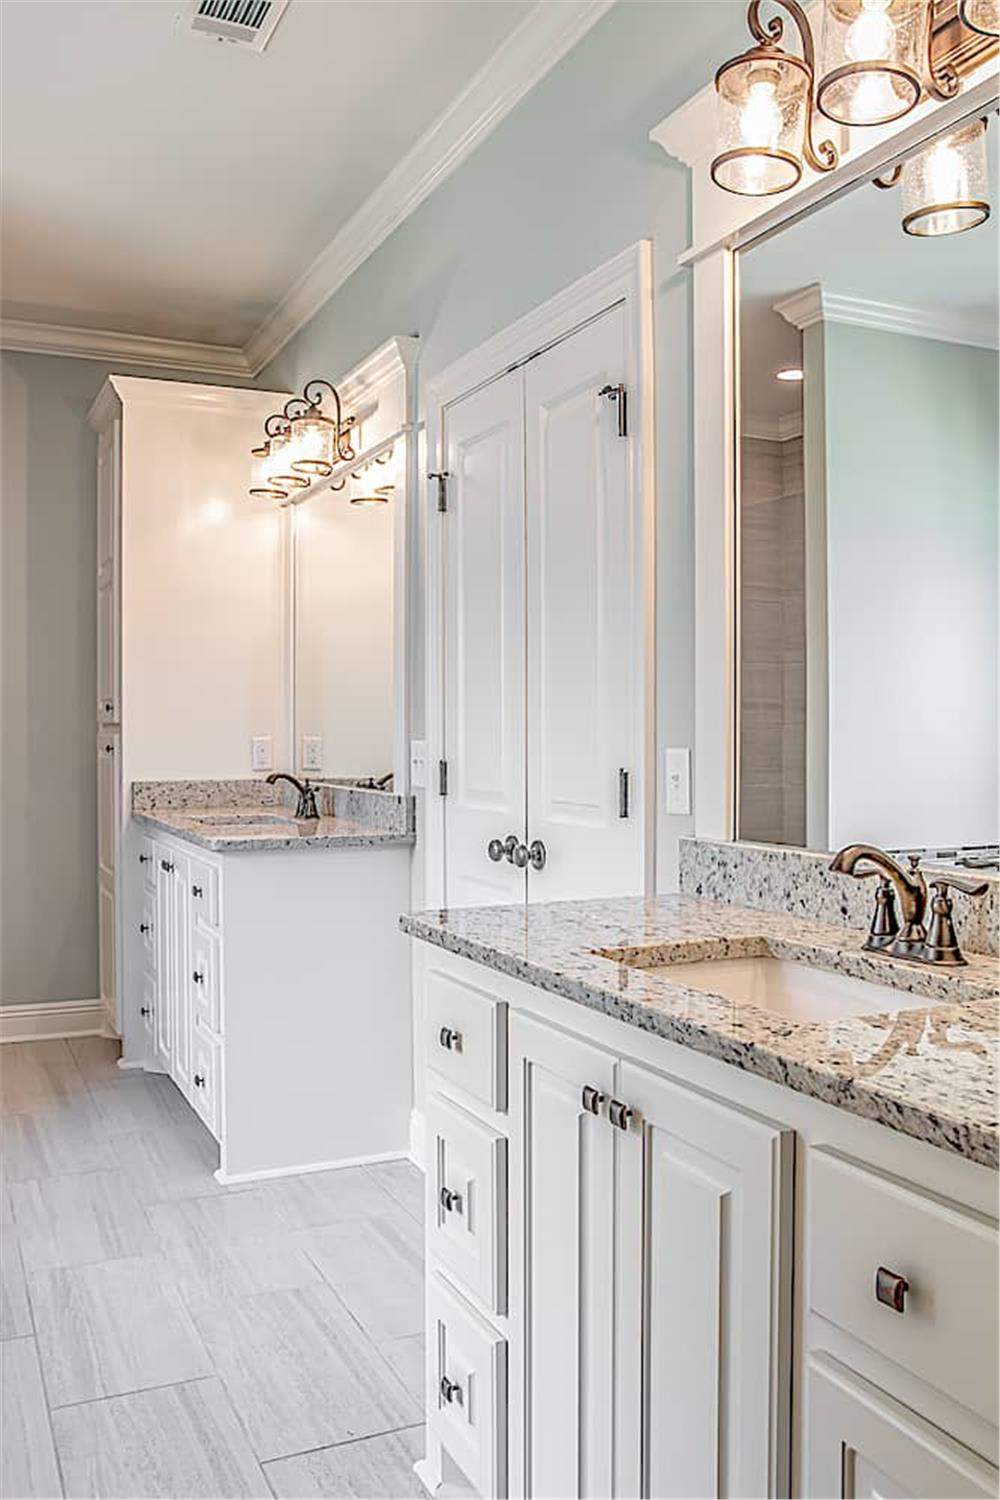 Bathroom with his and her vanities separated by the double door to the master bedroom